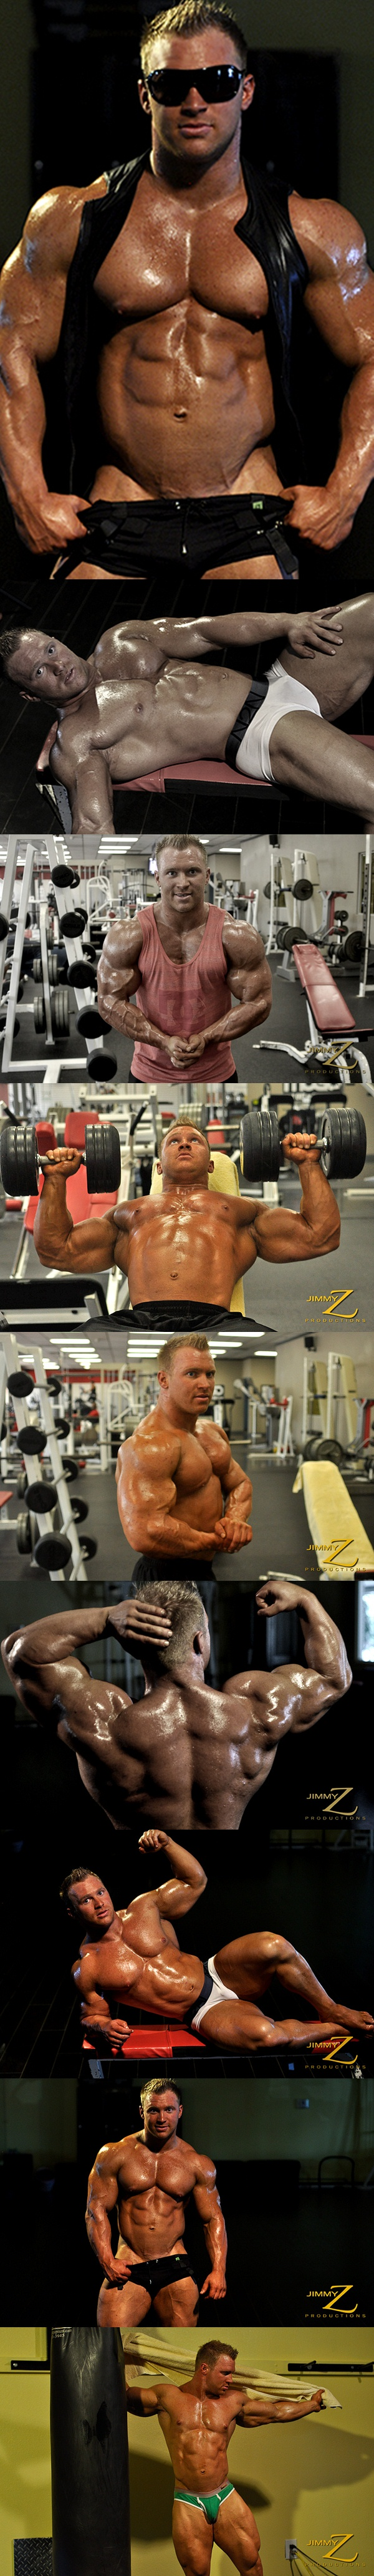 Gerard Dietrich pumping flexing posing Workout at Jimmyzproductions 02